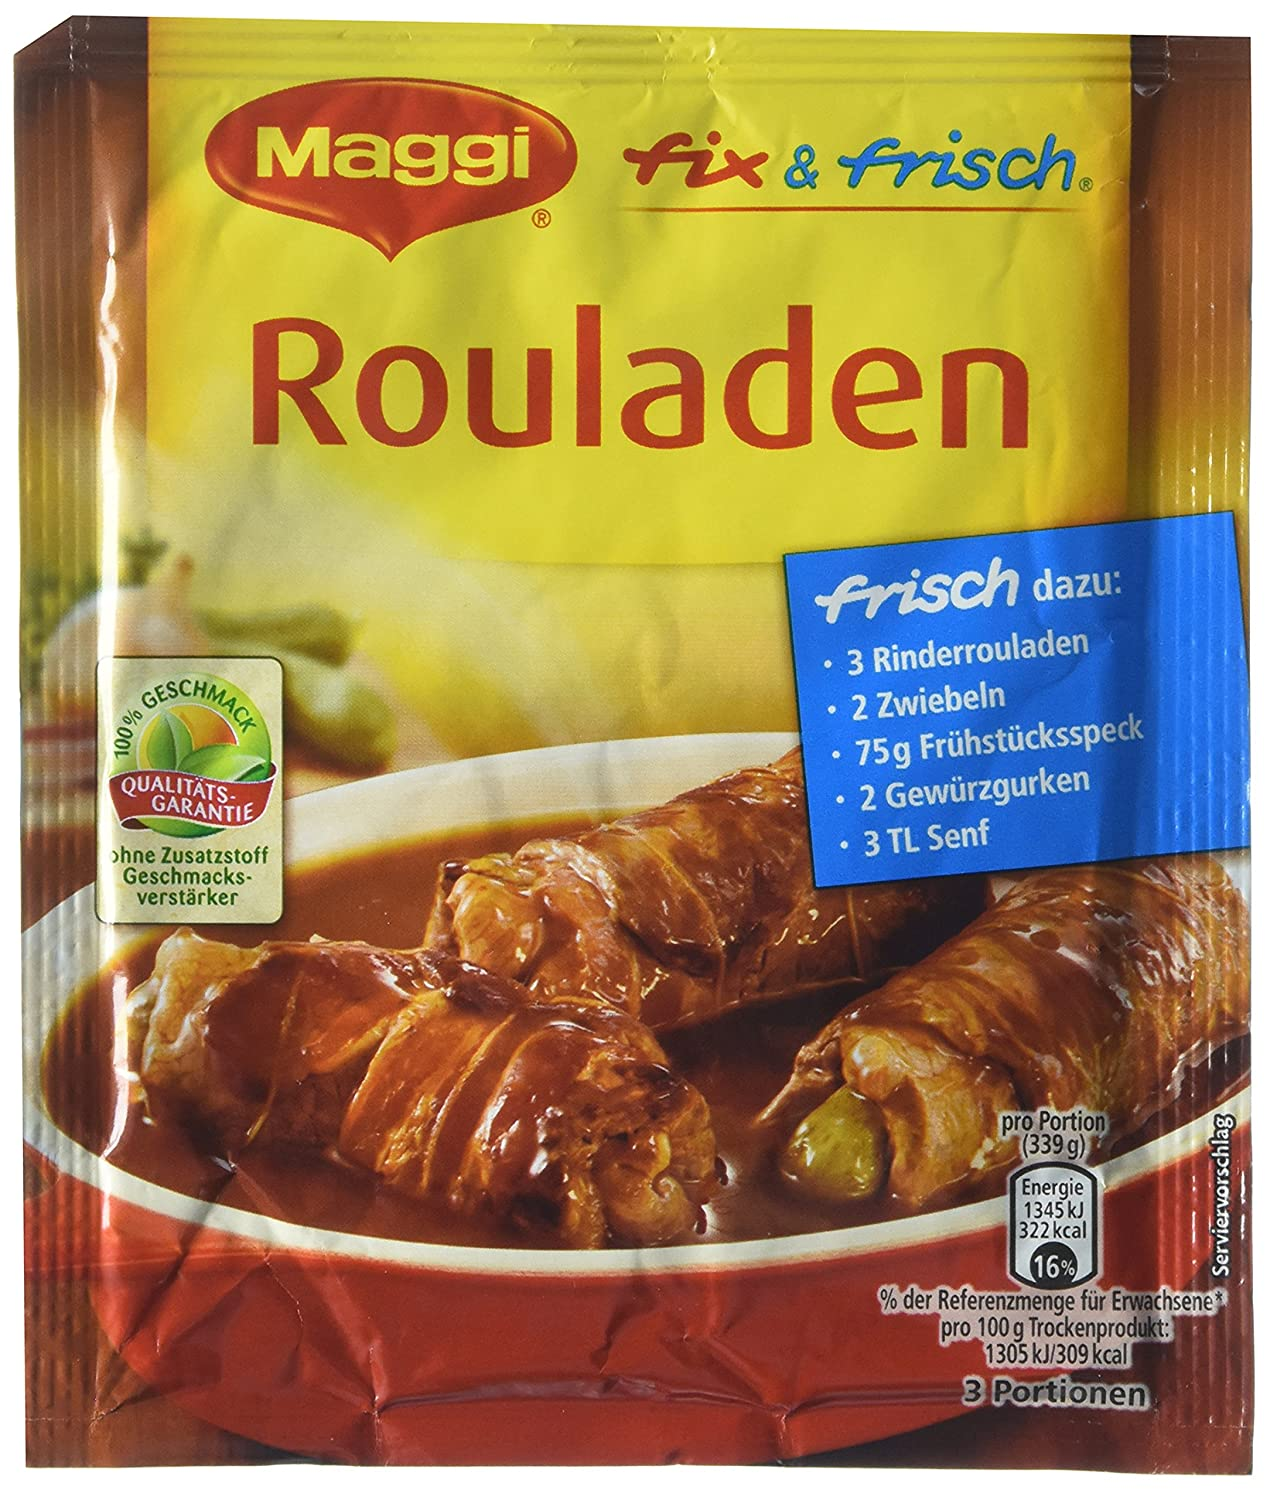 MAGGI fix & fresh rouladen (Rouladen) (Pack of 4)